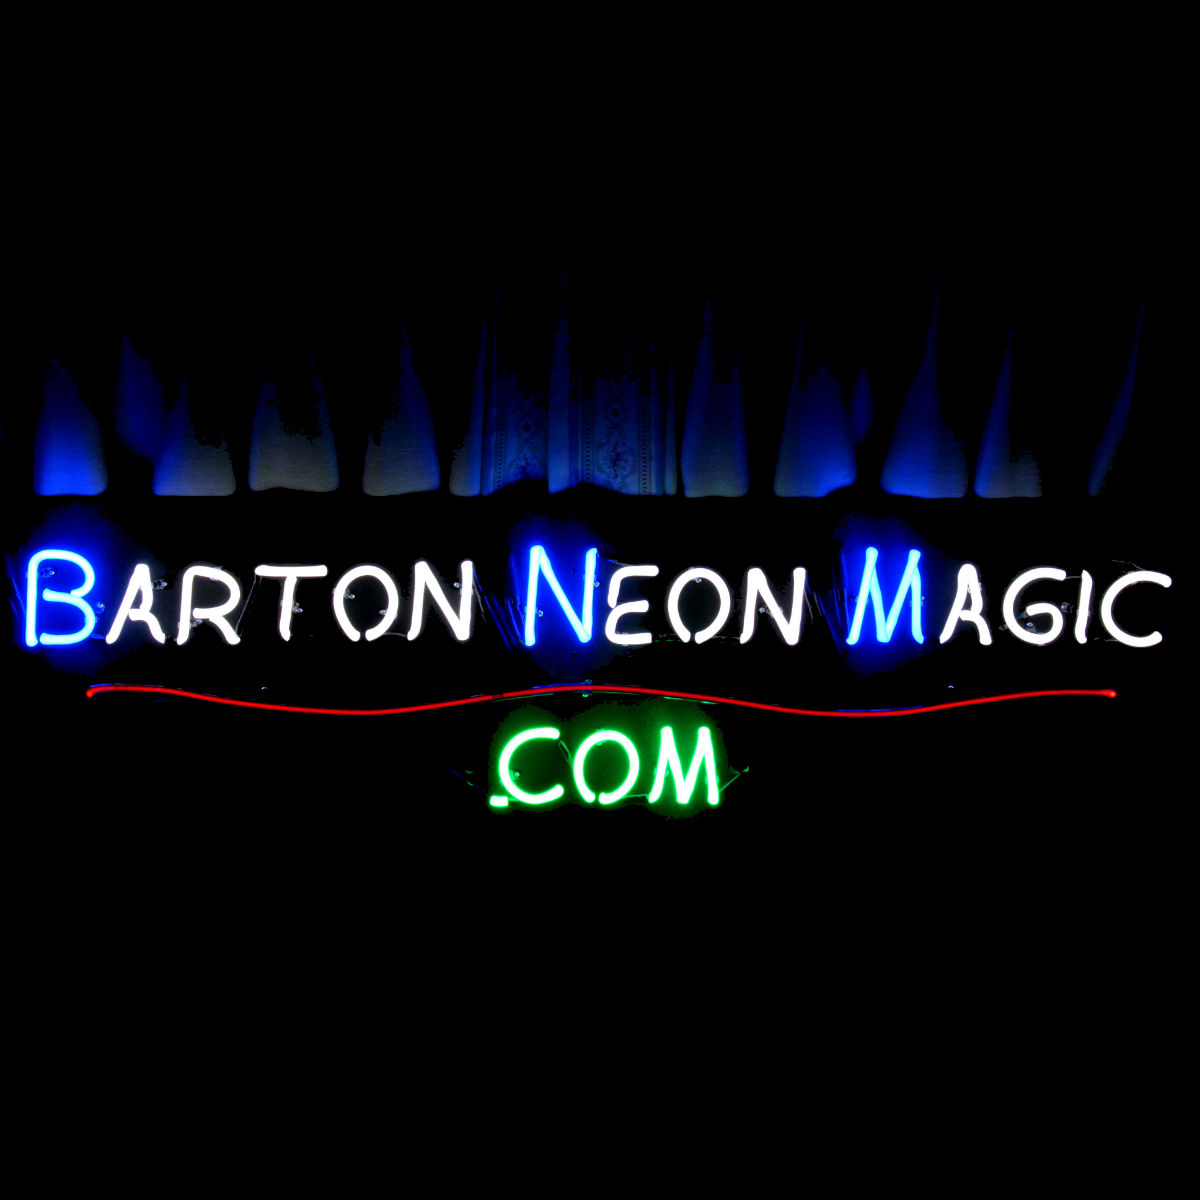 Custom Airplane Hangar Neon Artworks by John Barton - BartonNeonMagic.com